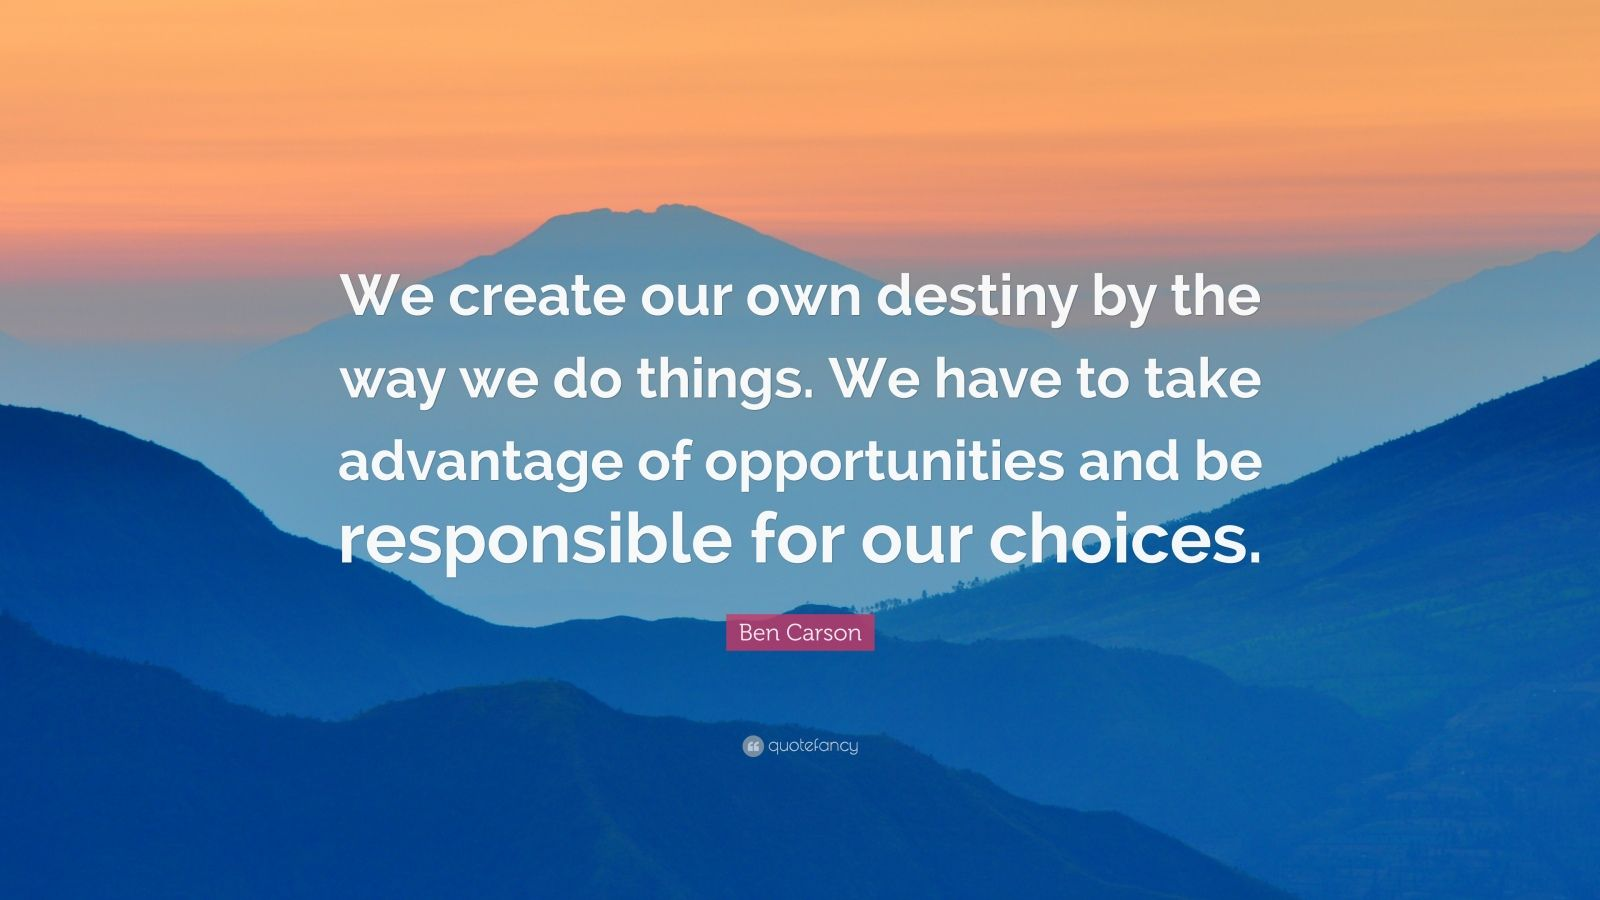 Mother Teresa Quotes Wallpapers Ben Carson Quote We Create Our Own Destiny By The Way We